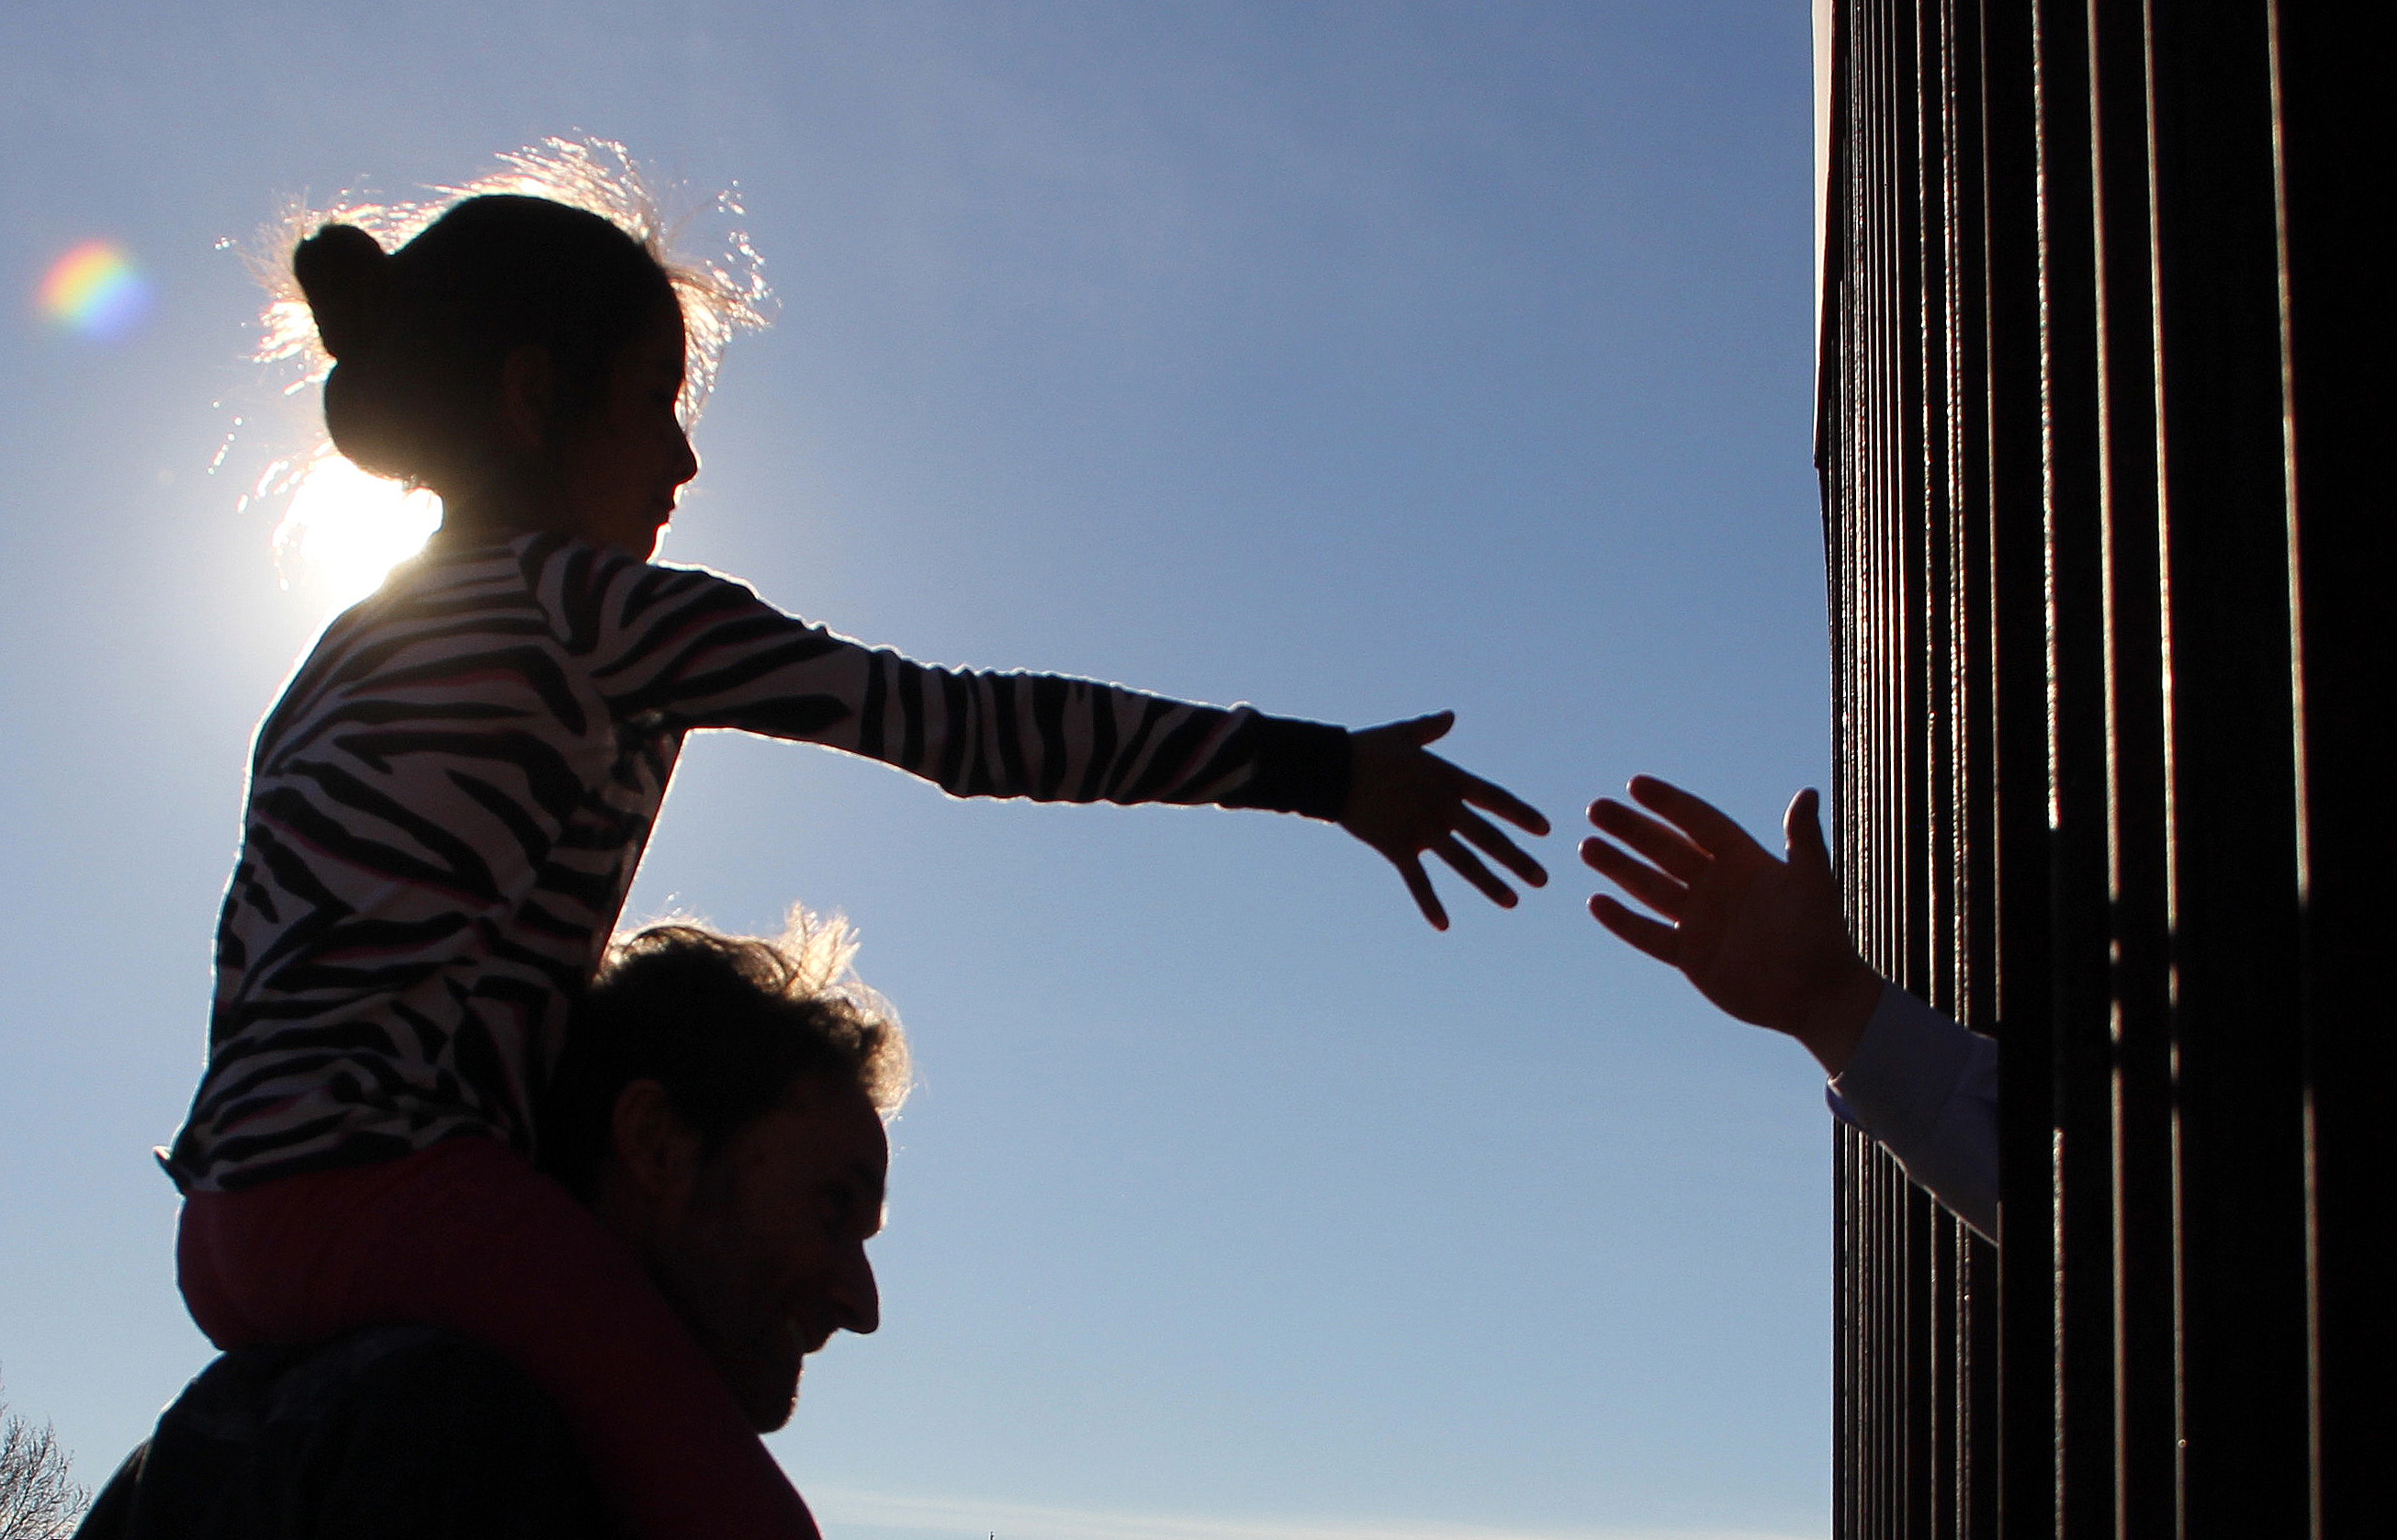 A girl from Anapra, a neighbourhood on the outskirts of Ciudad Juarez in Mexico, touches hands with a person on the United States through the border fence, during a prayer with priests and bishops from both countries to ask for the migrants and people of the area, on February 26, 2019. - Built two years ago, the Anapra fence is one of several reinforced border barriers that the administration of US President Donald Trump calls the first sections of the wall. (Photo by Herika MARTINEZ / AFP) (Photo credit should read HERIKA MARTINEZ/AFP/Getty Images)